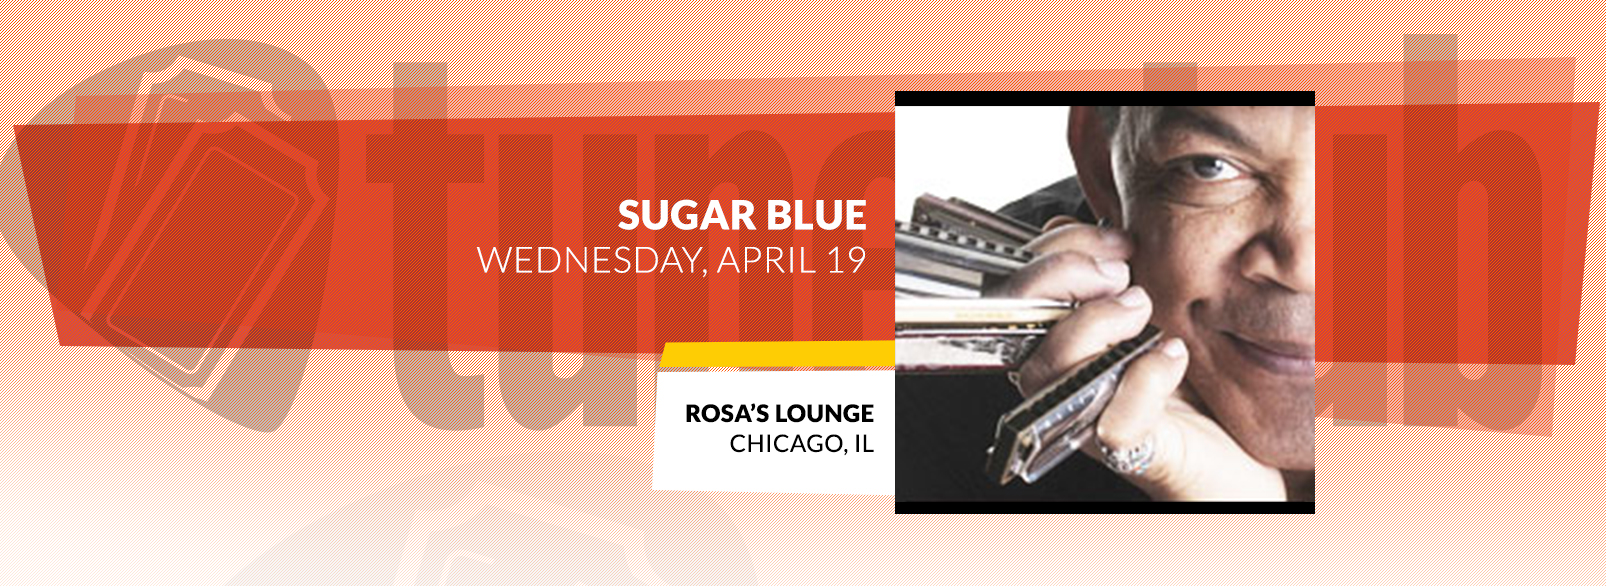 Sugar Blue @ Rosa's Lounge